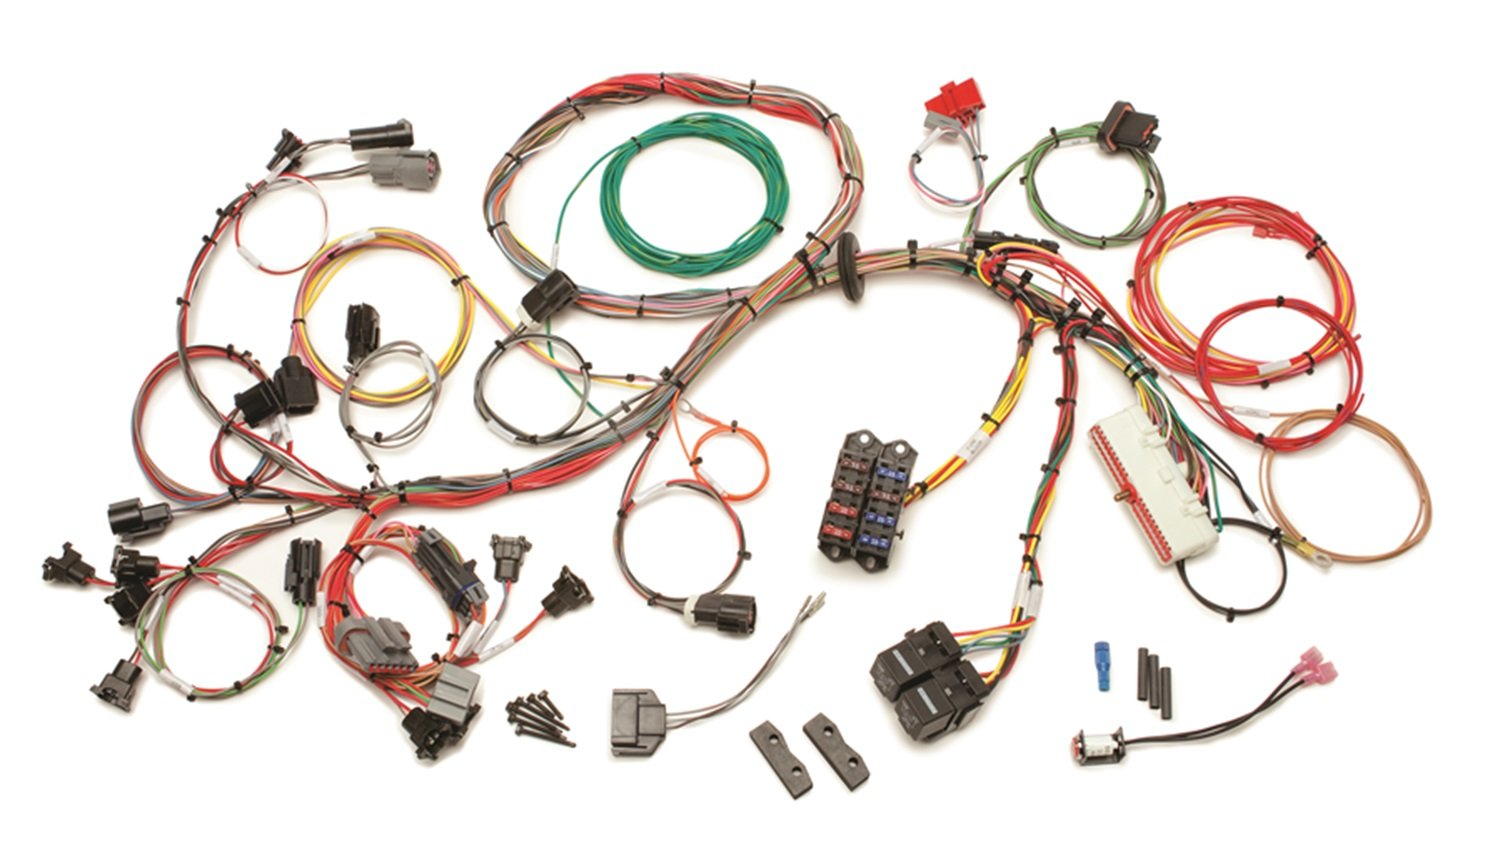 71UX1IBfleL._SL1500_ amazon com painless 60510 5 0l wiring harness automotive fuel injector wiring harness at bayanpartner.co